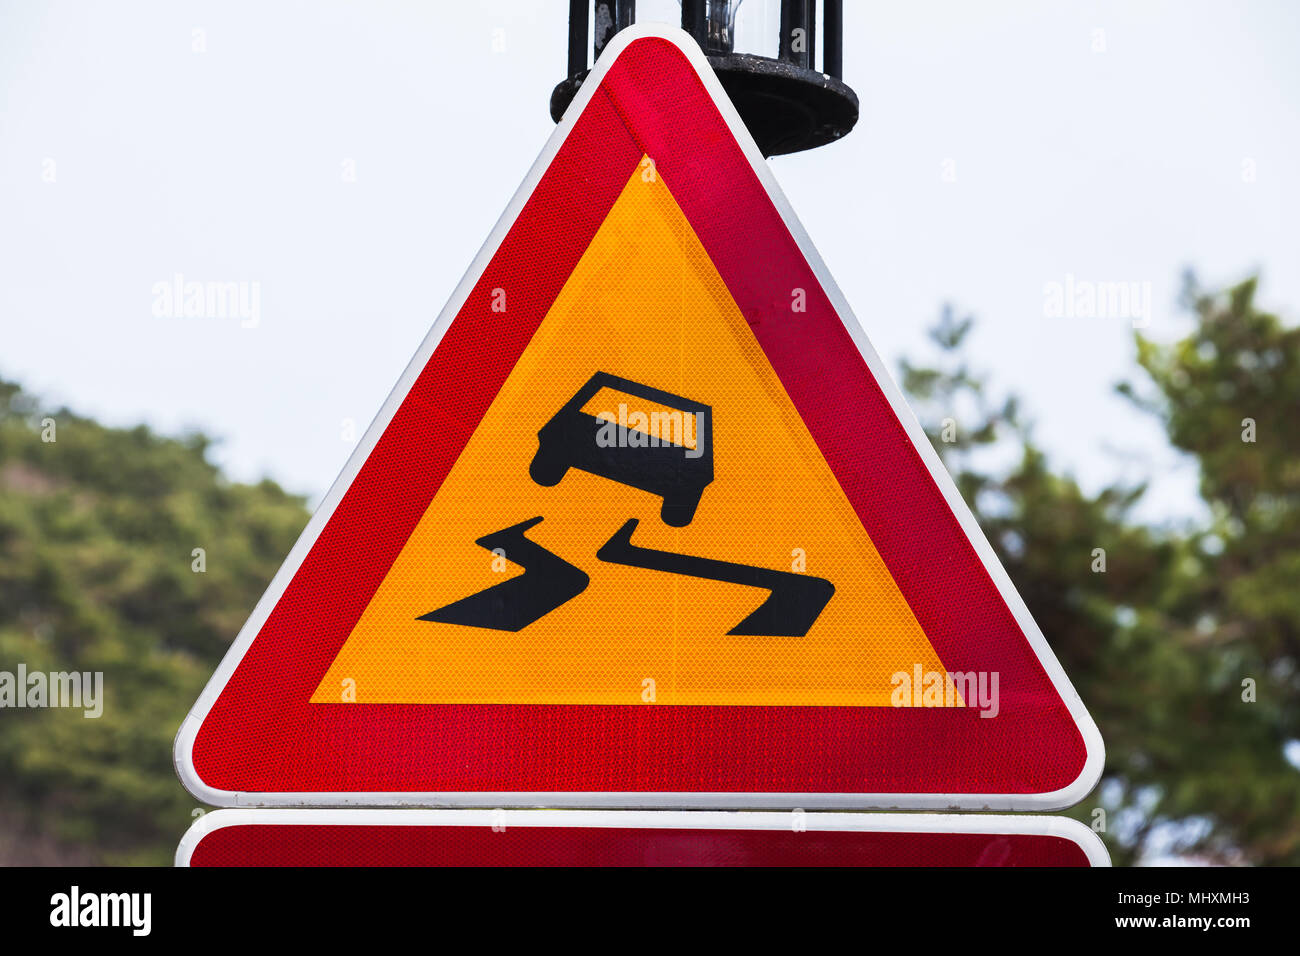 Slippery road, warning triangle road sign over bright sky background - Stock Image